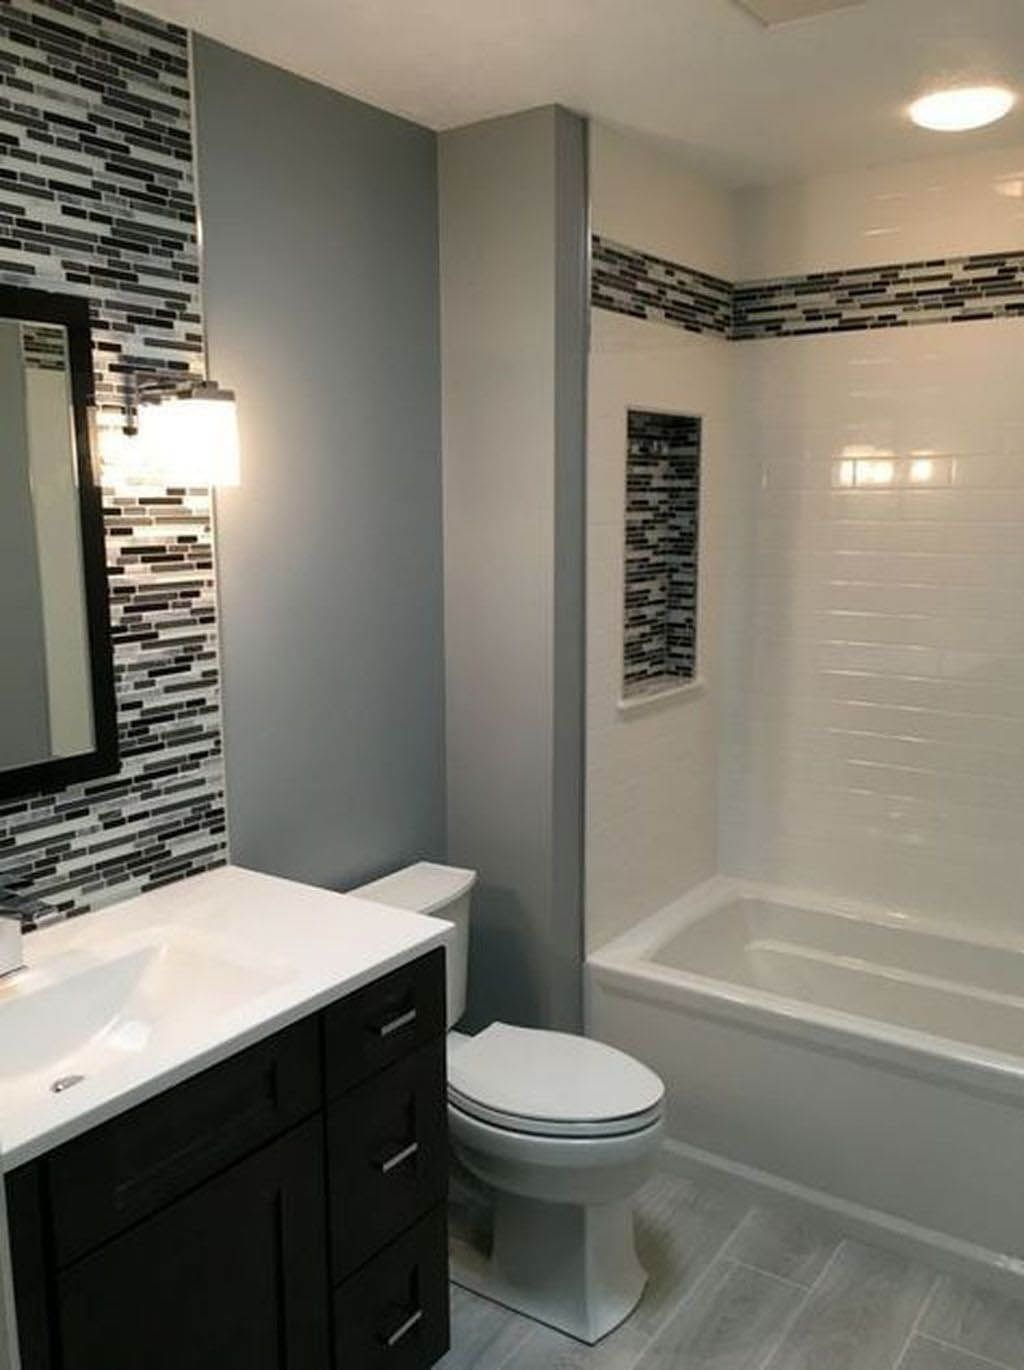 Cool And Contemporary Small Bathroom Design Ideas Without Bathtub Only In Popi Home Design Ba Small Bathroom Remodel Bathroom Remodel Designs Stylish Bathroom